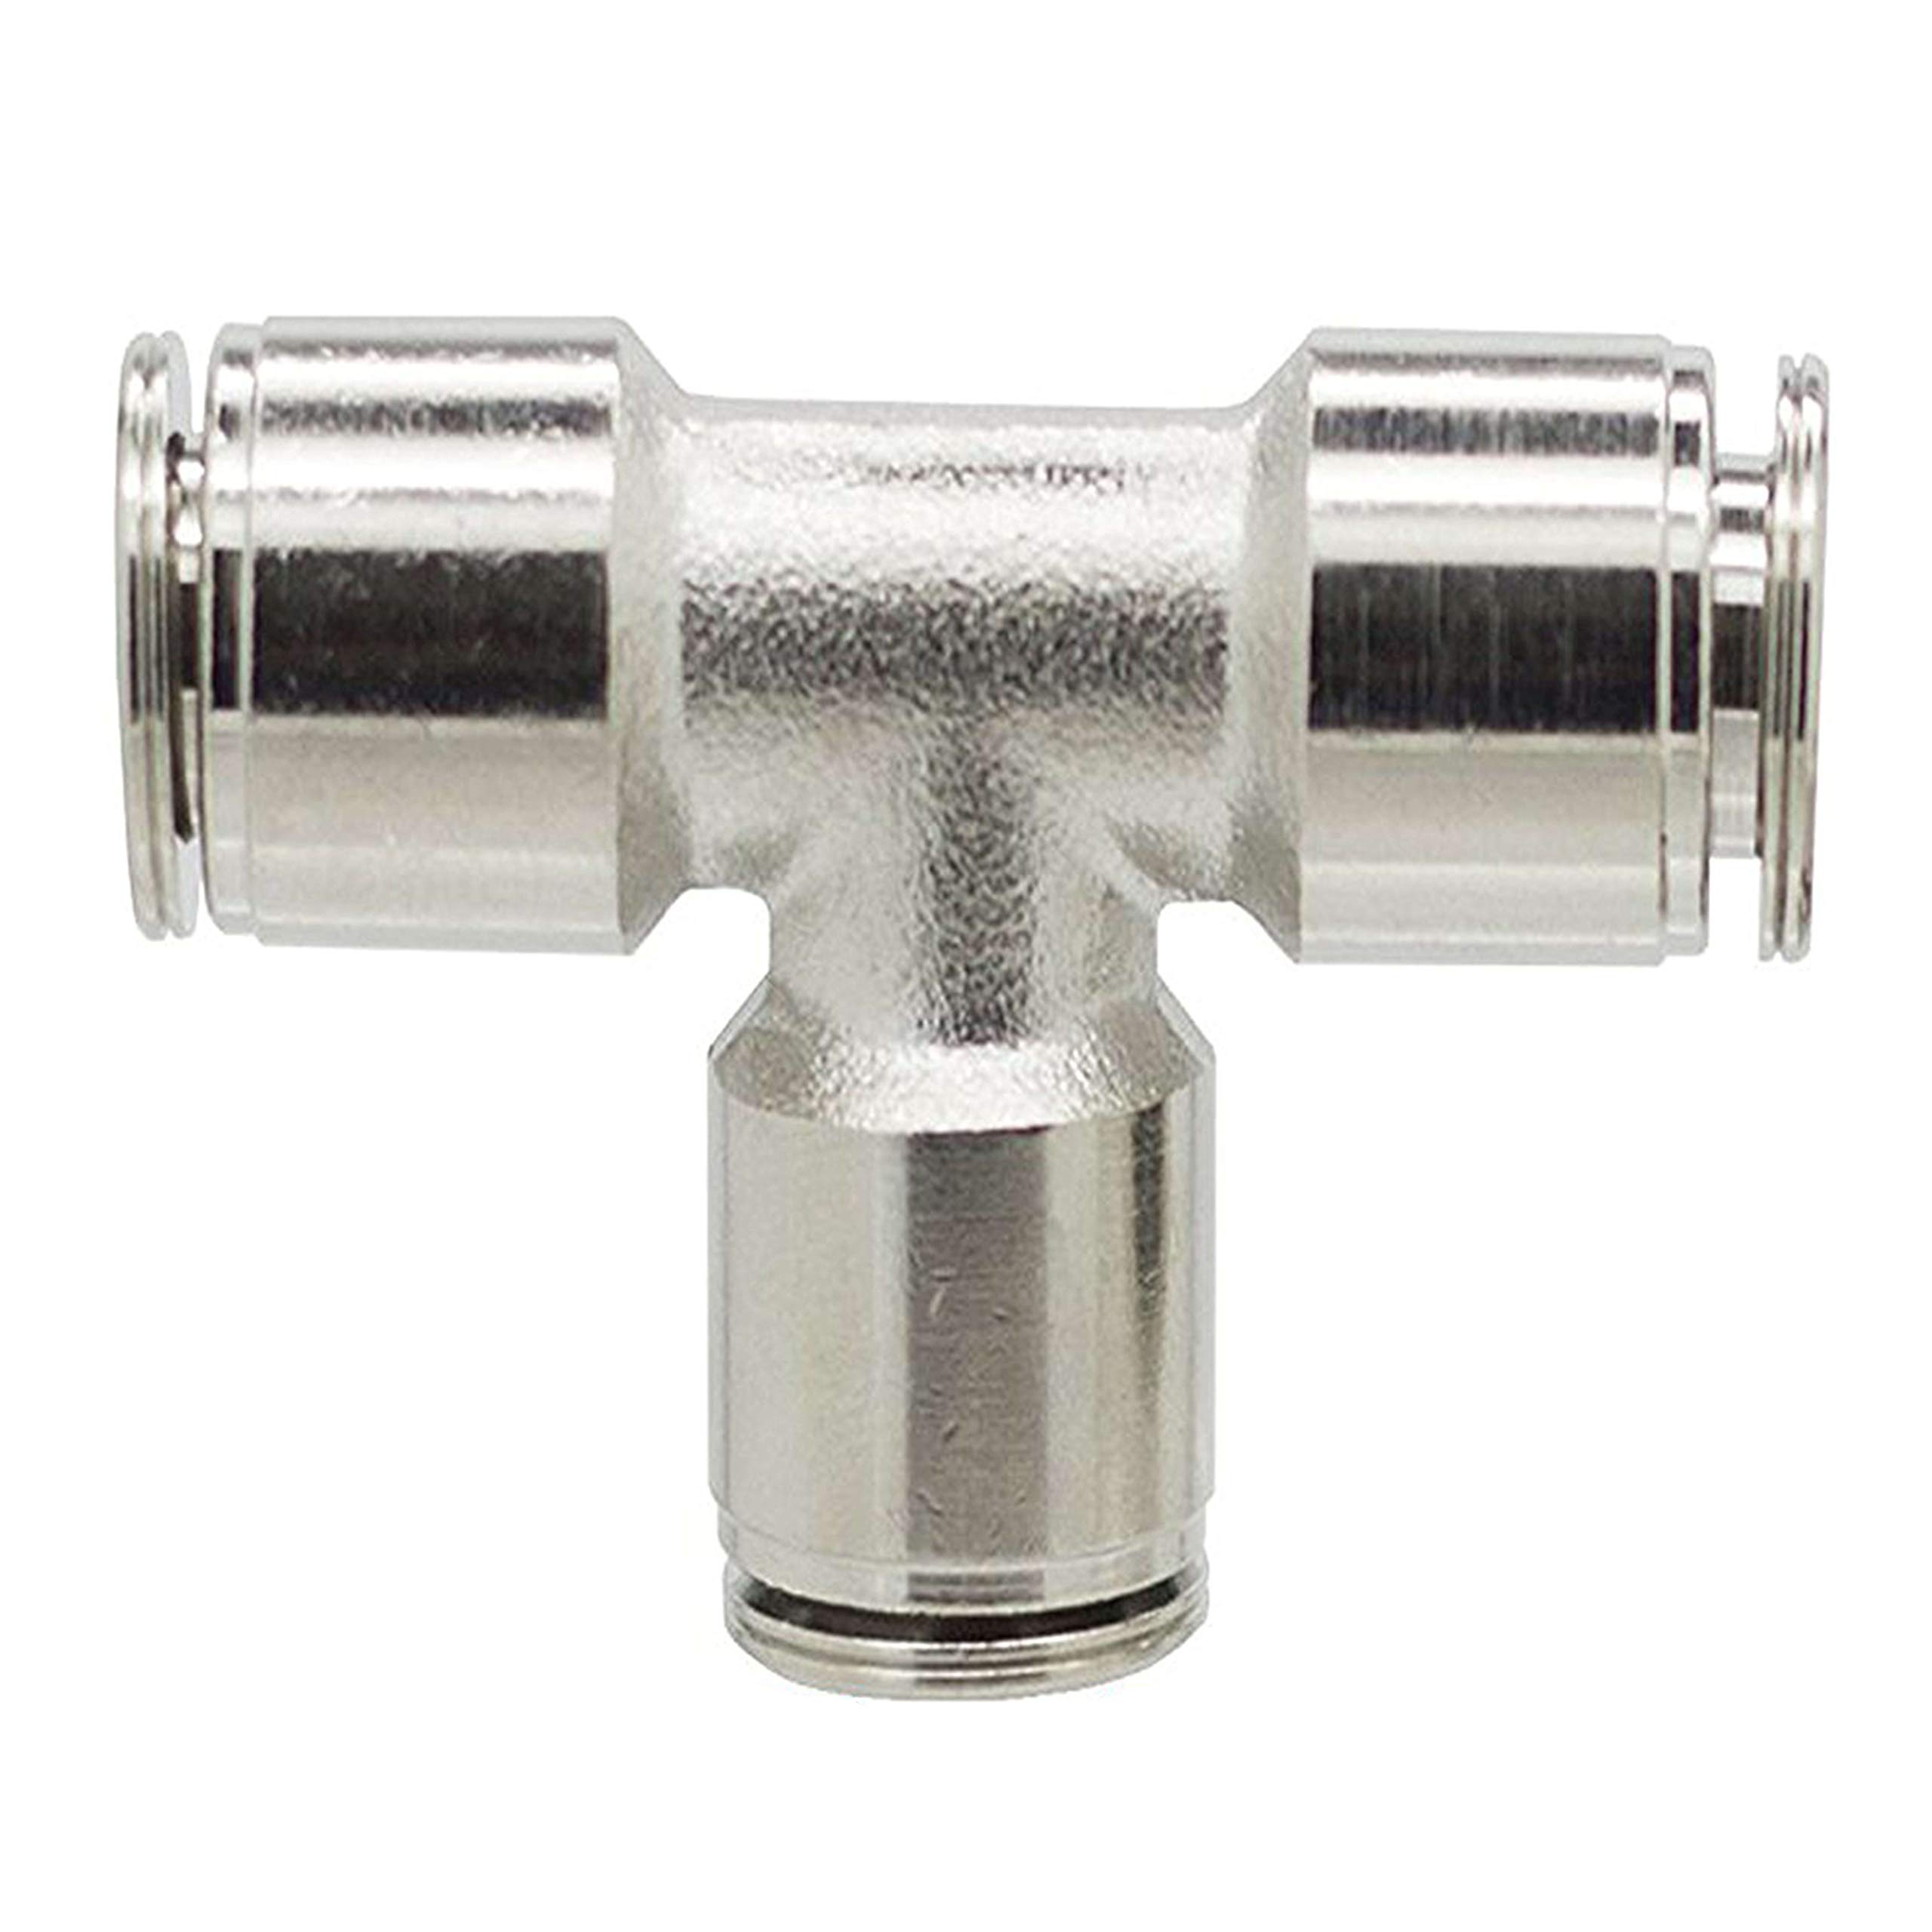 Utah Pneumatic Pack of 2 Nickel-Plated Brass Push to Connect Fittings 1/4''Od Tee Connect Union Push Fit Fittings Tube Fittings Pneumatic Fittings Air Line Fittings Tube Connector (1/4'' Tee Brass)